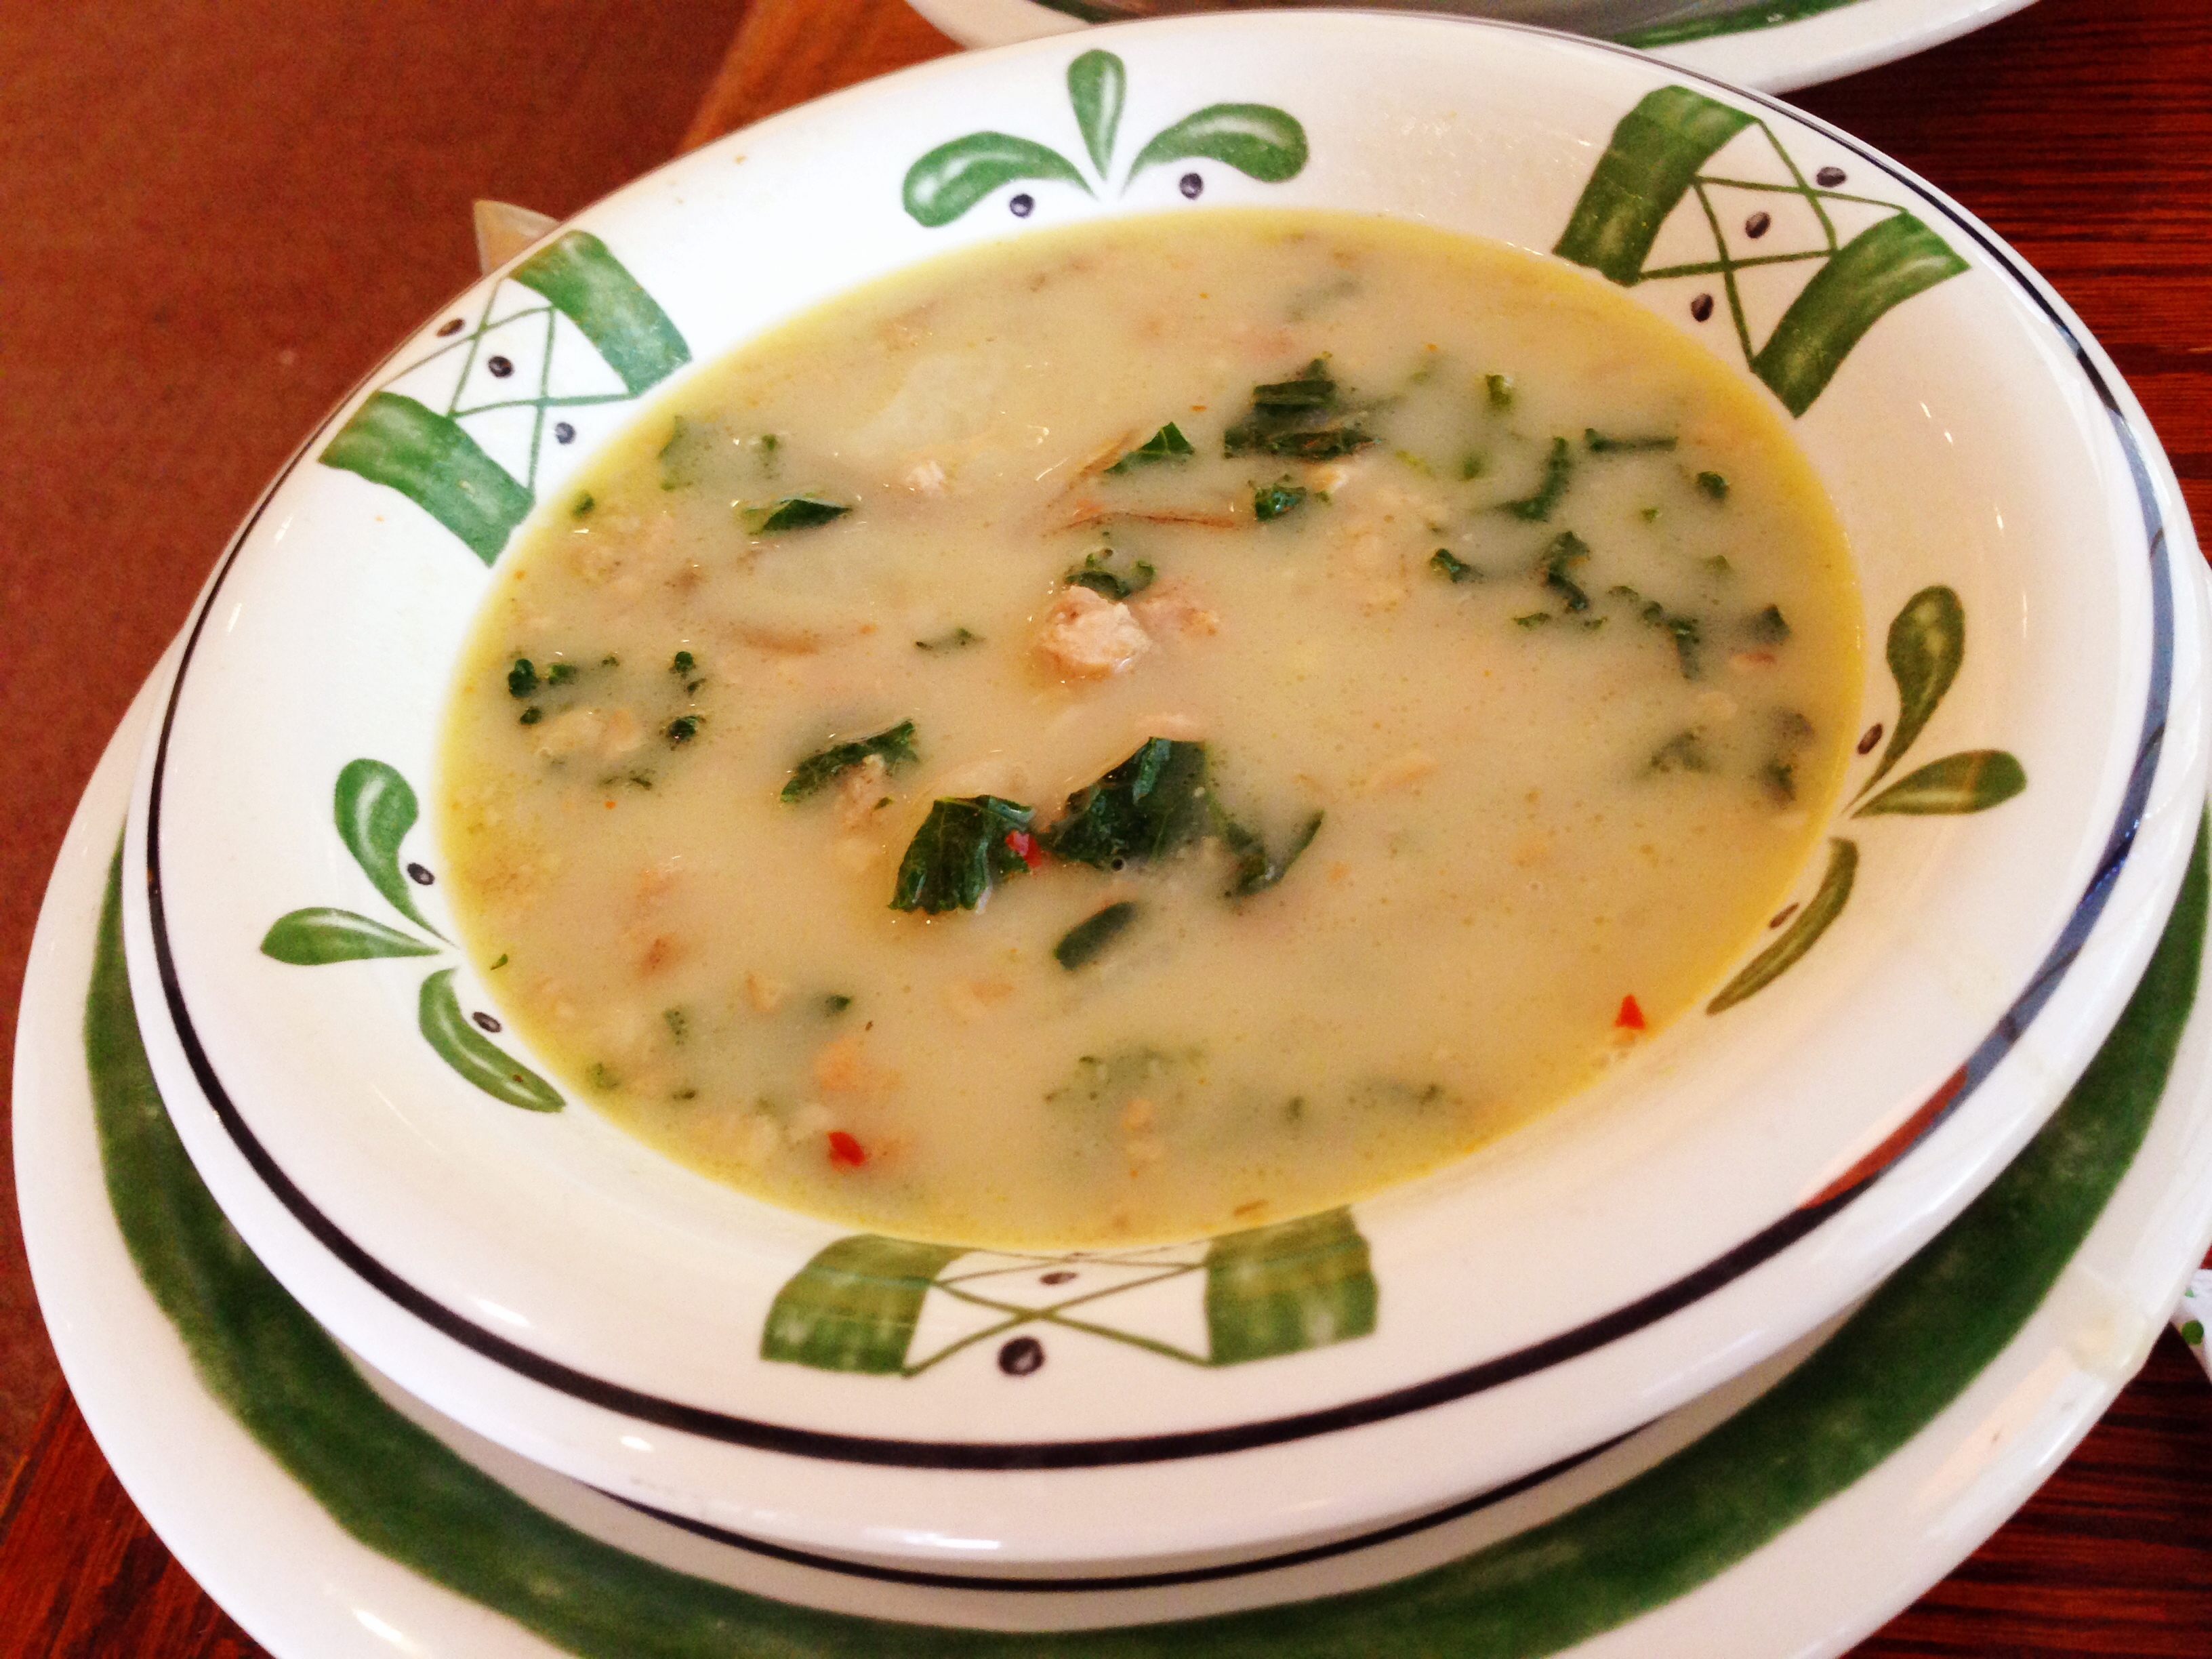 zuppa toscana | South Bay Foodies